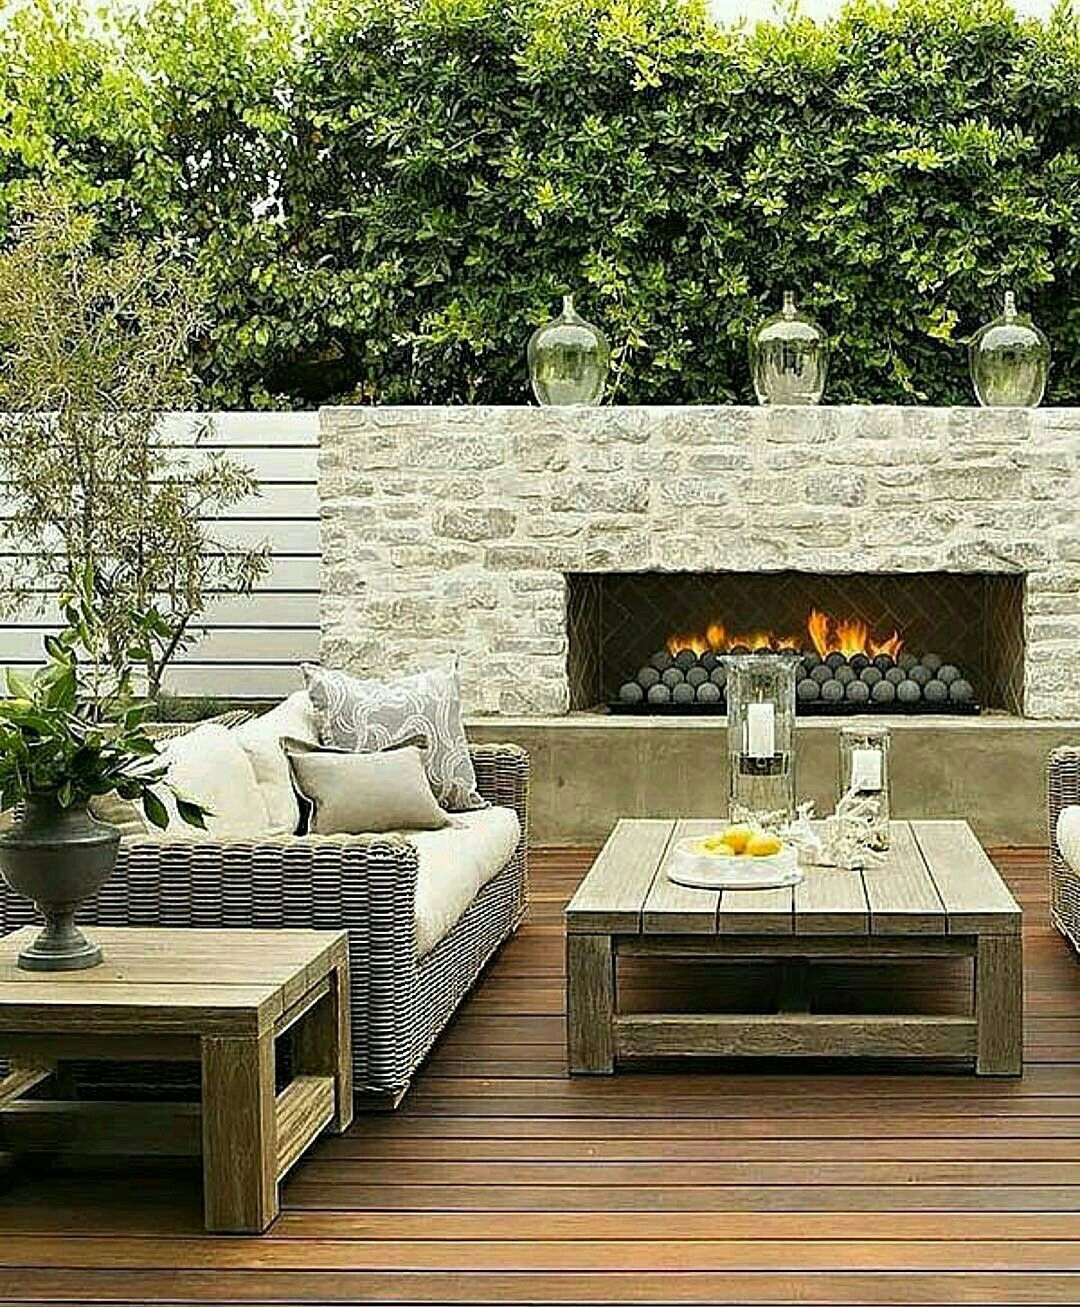 Fireplace And Privacy Fence Outdoor Fireplace Designs Backyard Fireplace Outdoor Fireplace